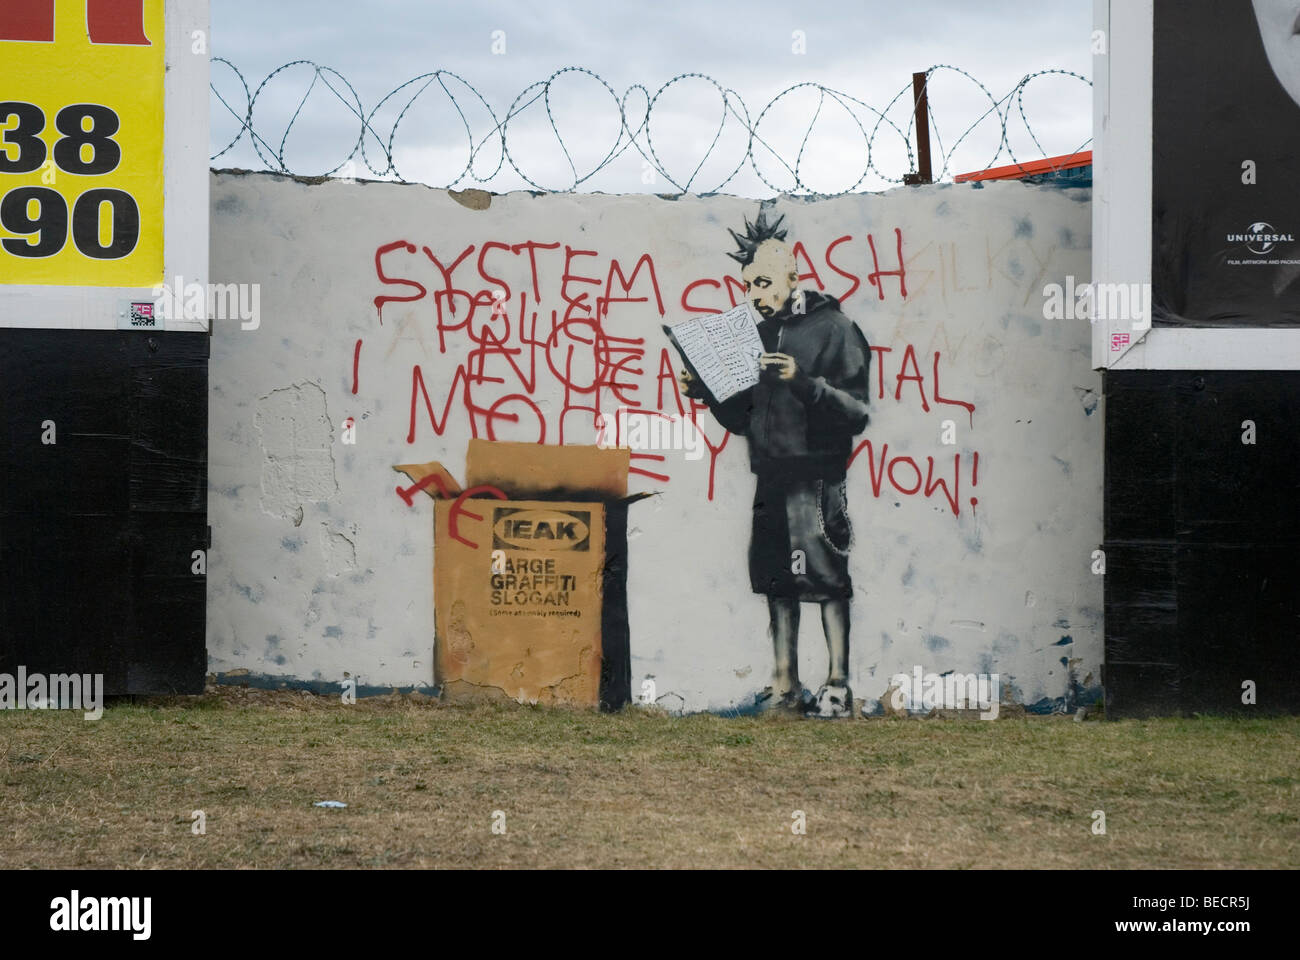 banksy croydon grafitti art - Stock Image